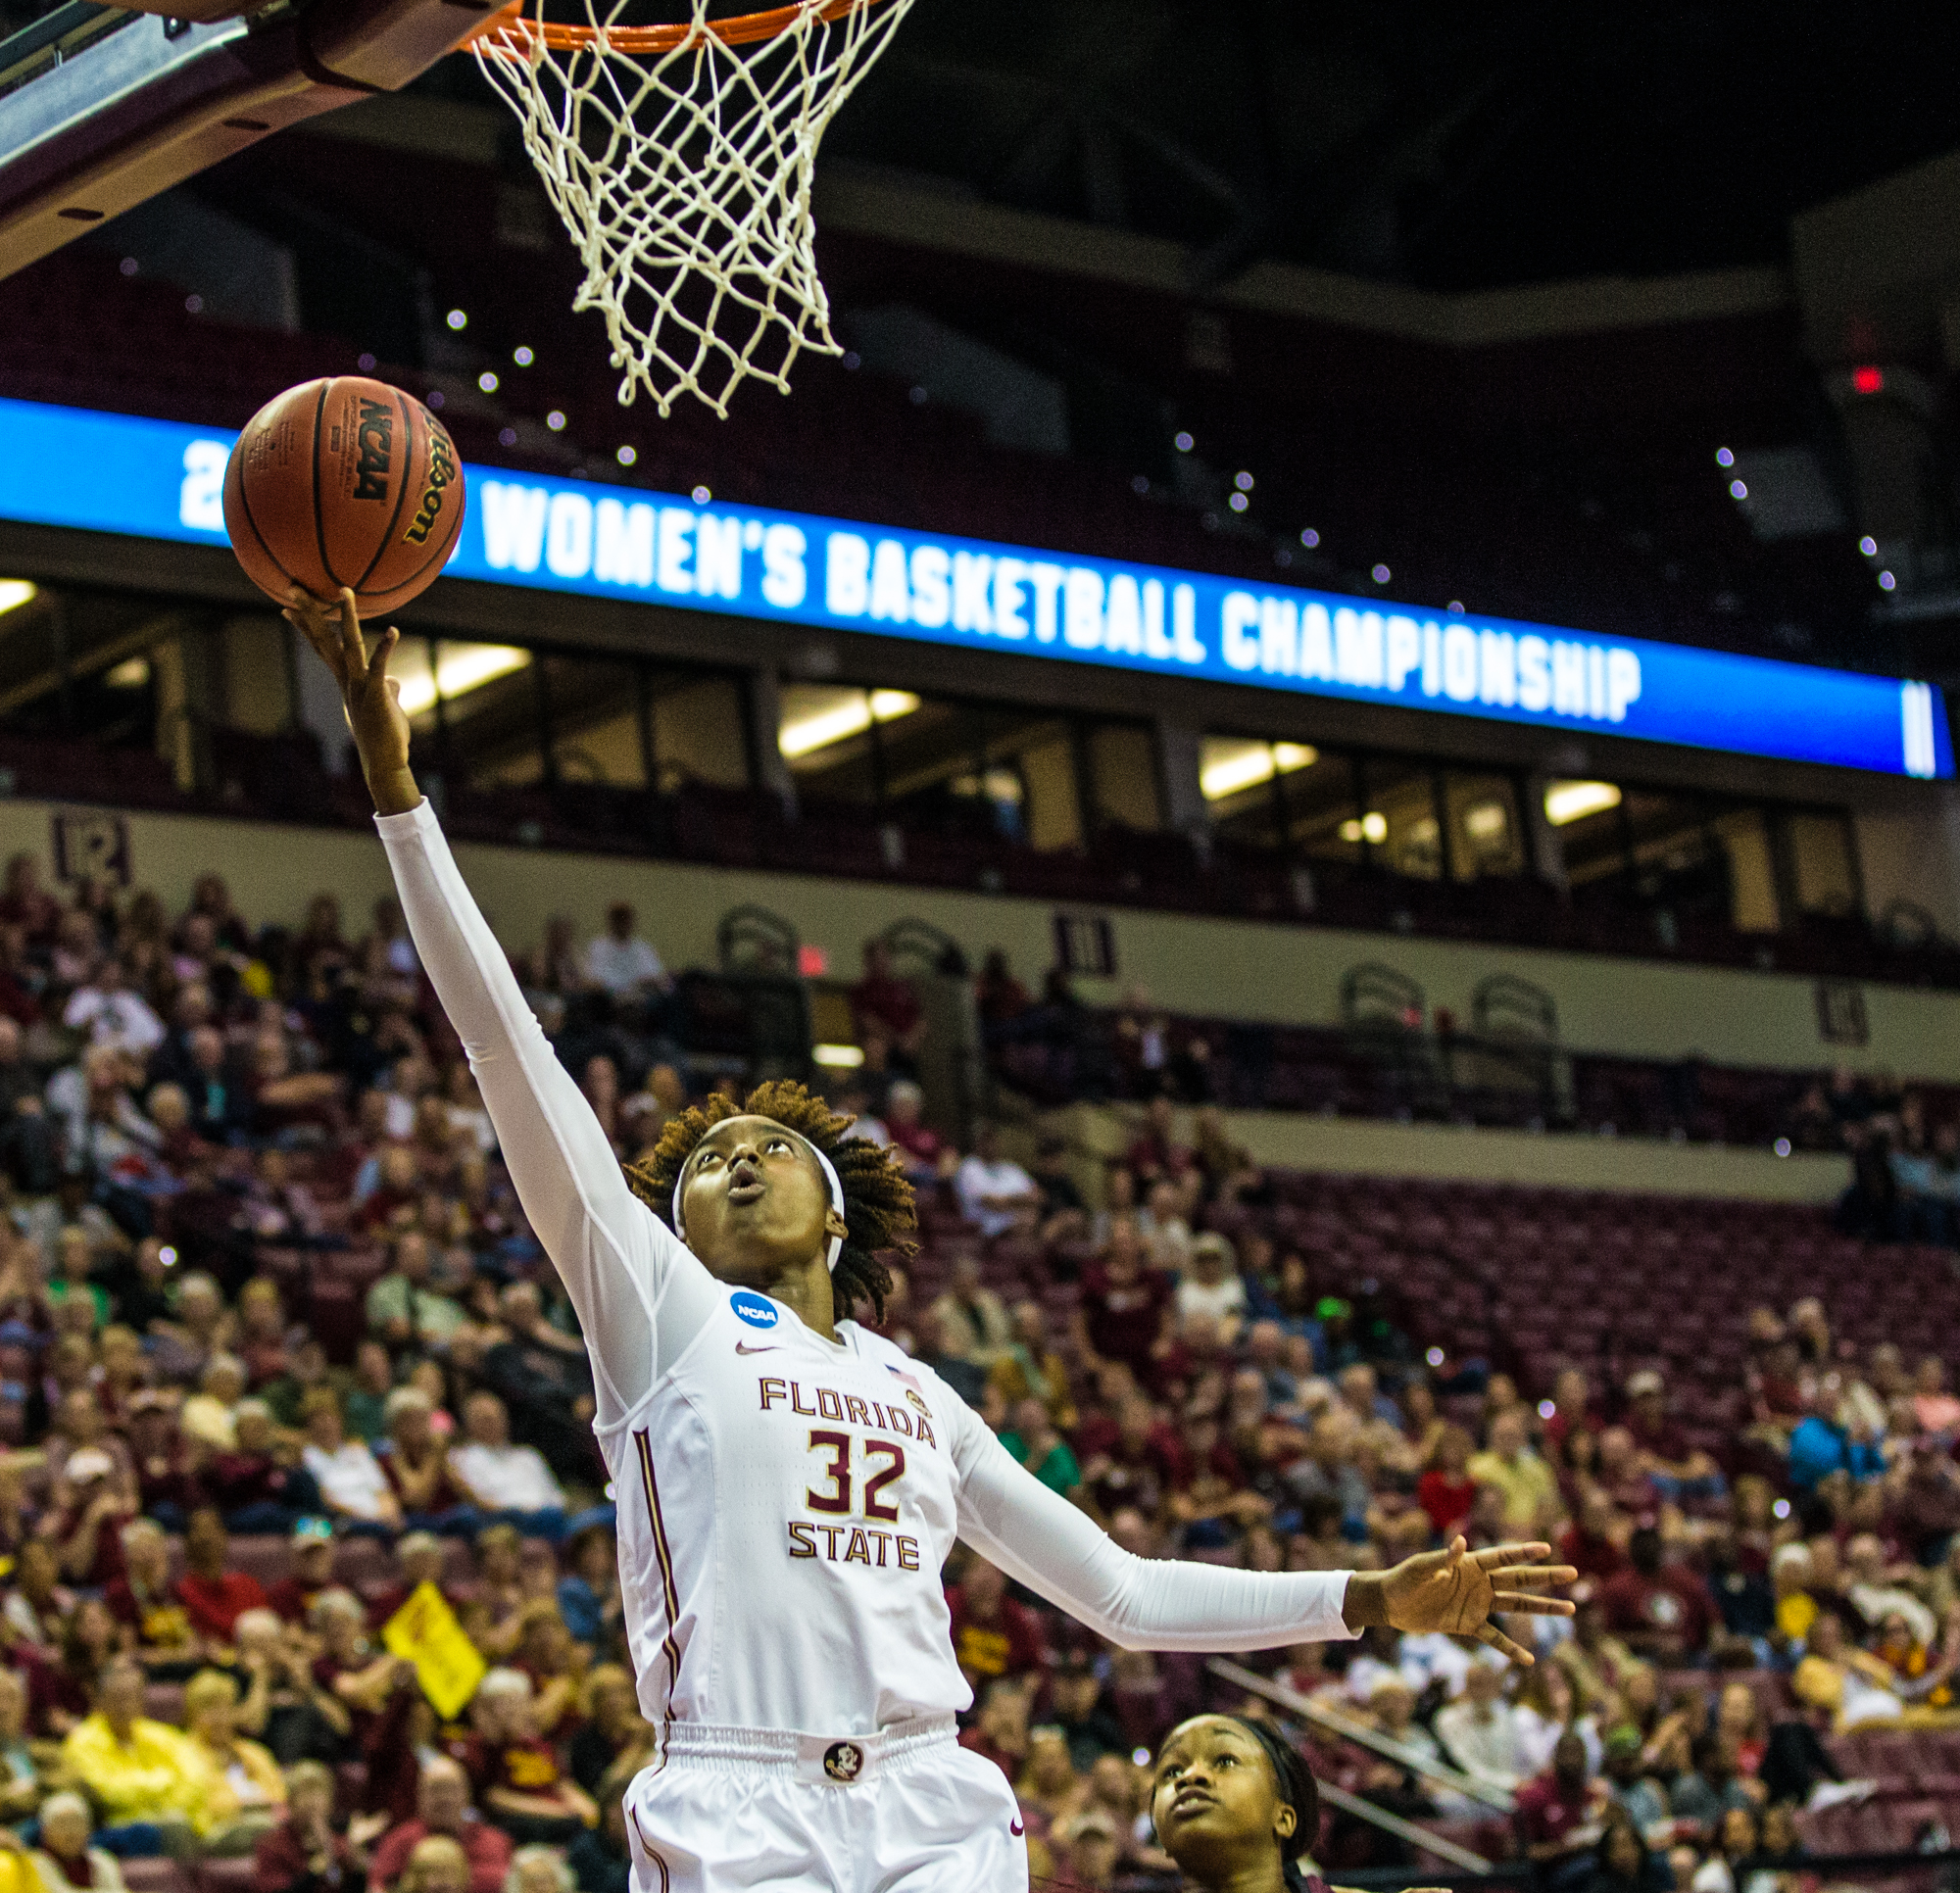 PHOTOS: FSU 91, Little Rock 49